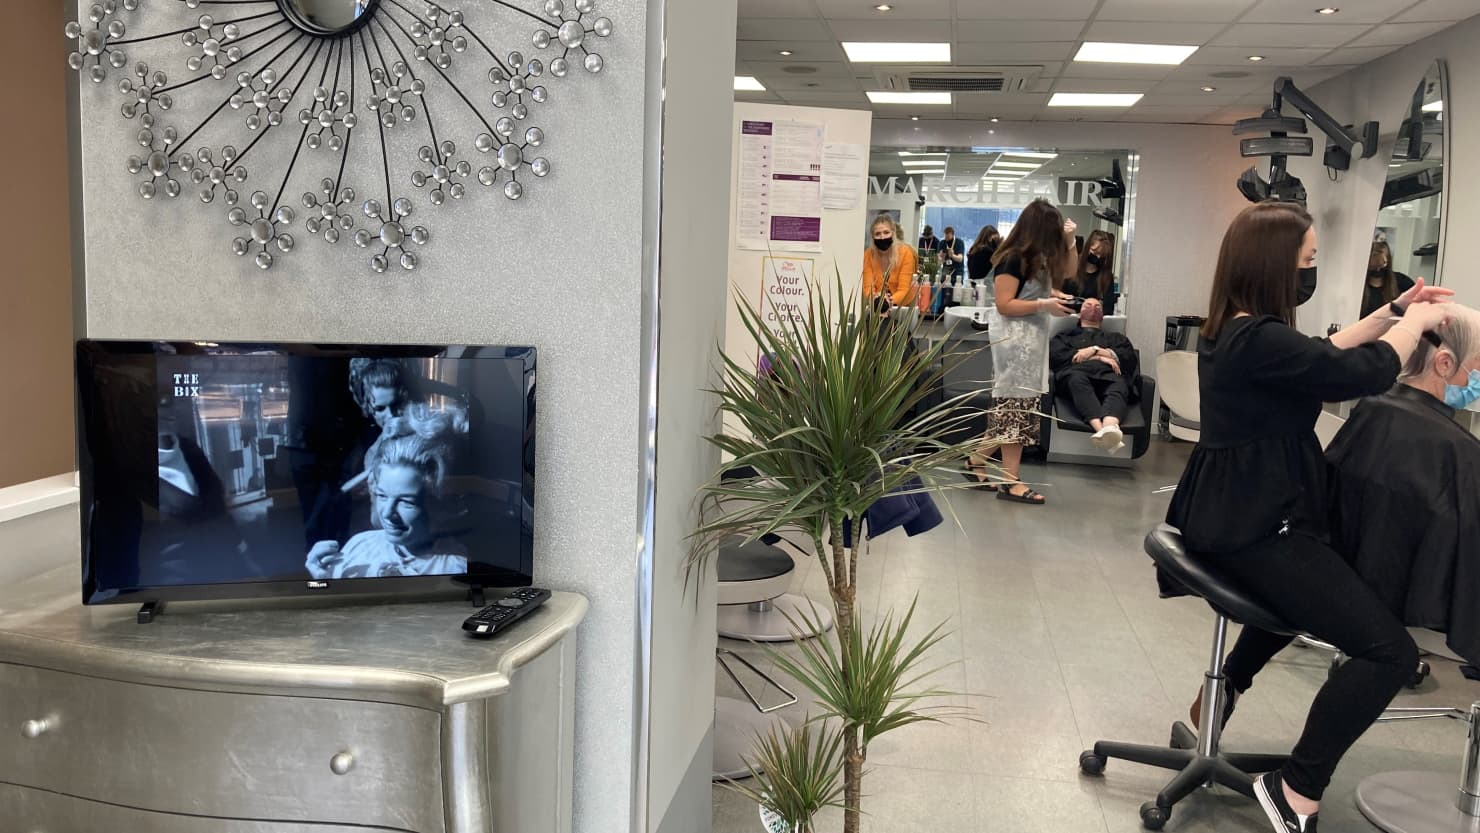 Last chance to see 'Screens in Salons' | The Box Plymouth